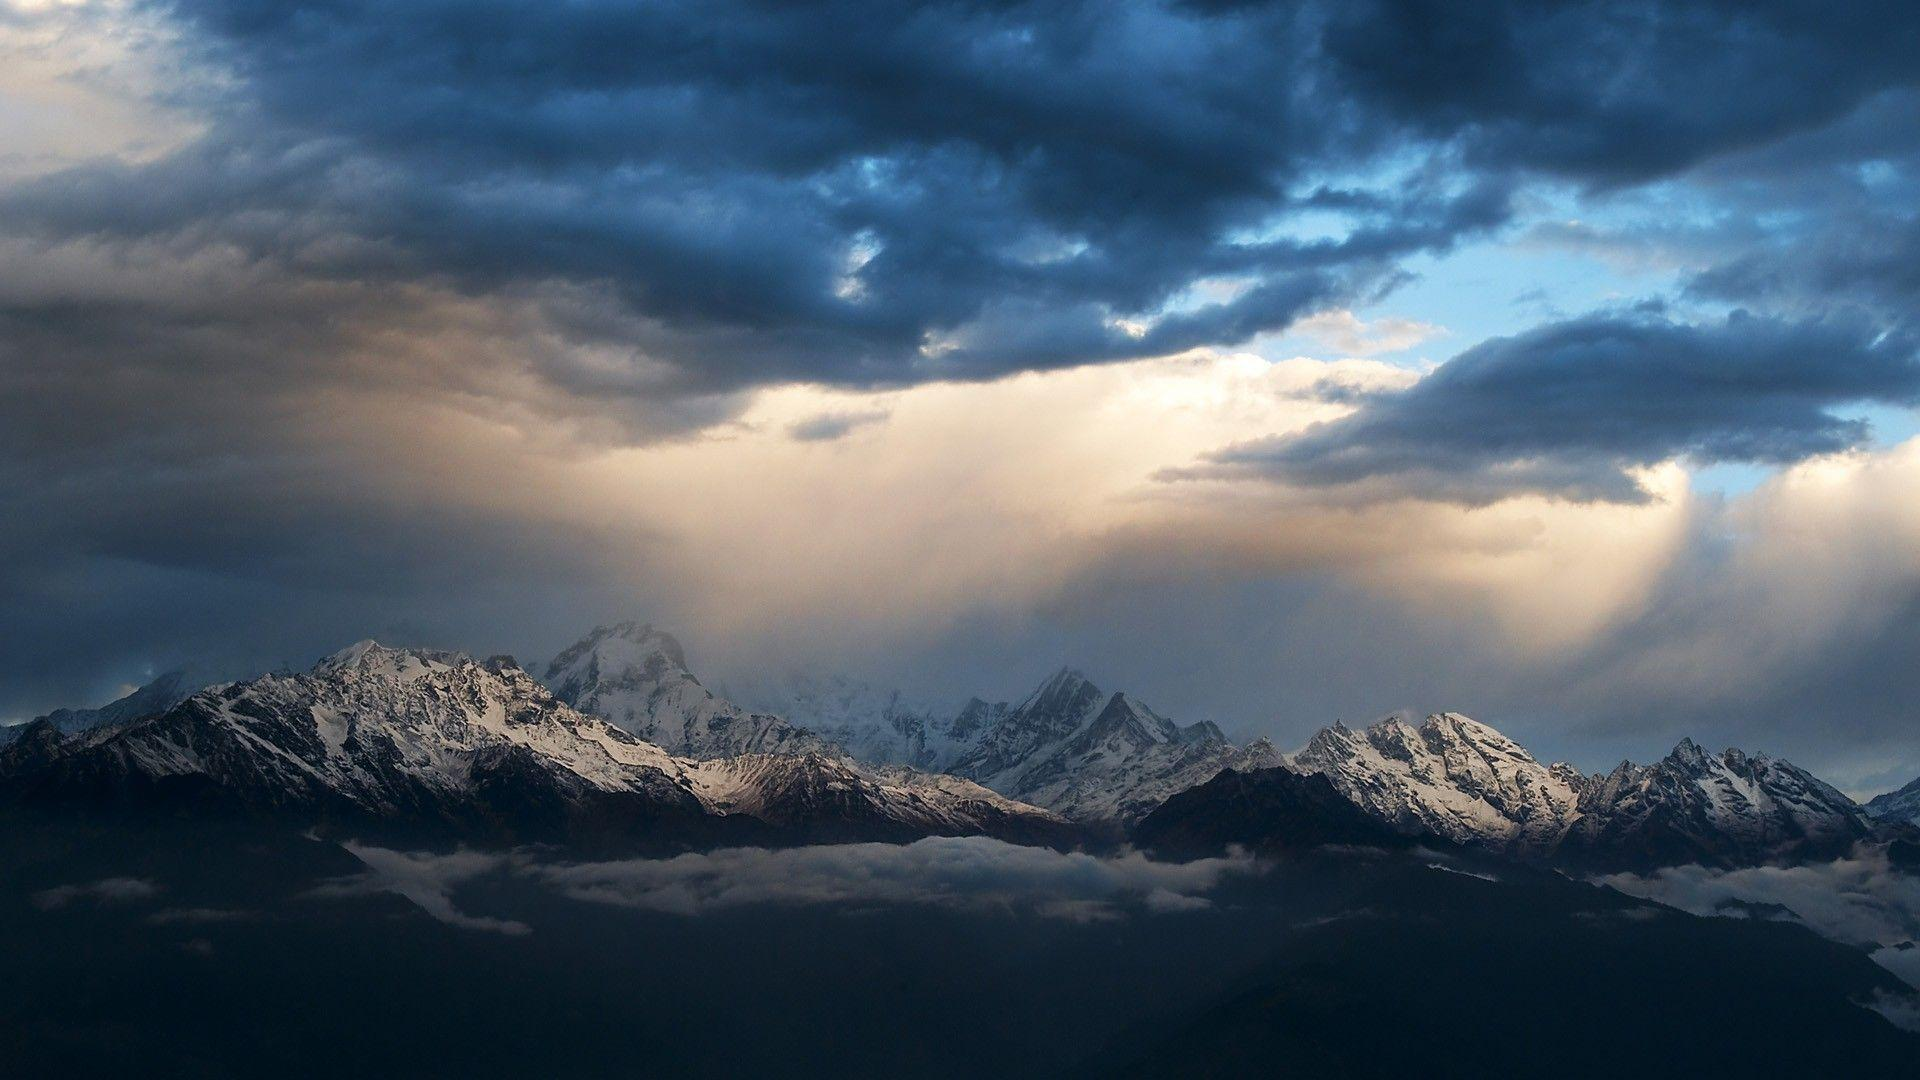 himalaya mountains hd wallpaper - photo #24